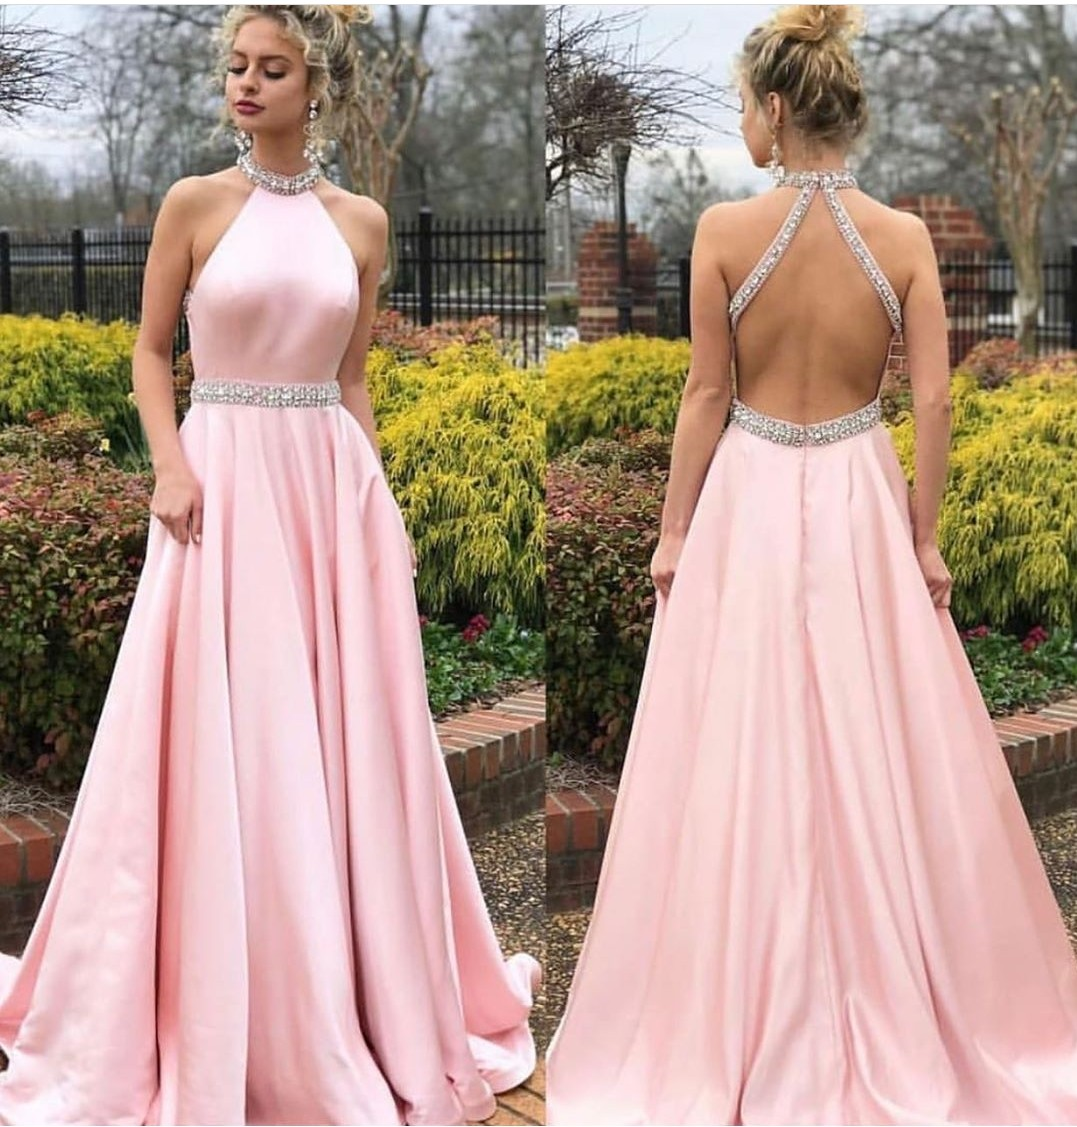 Backless Pink   Prom     Dresses   A-line Satin Evening Gowns 2019 Graduation   Dress   Beaded Sequined Custom Made PT05 Party Formal